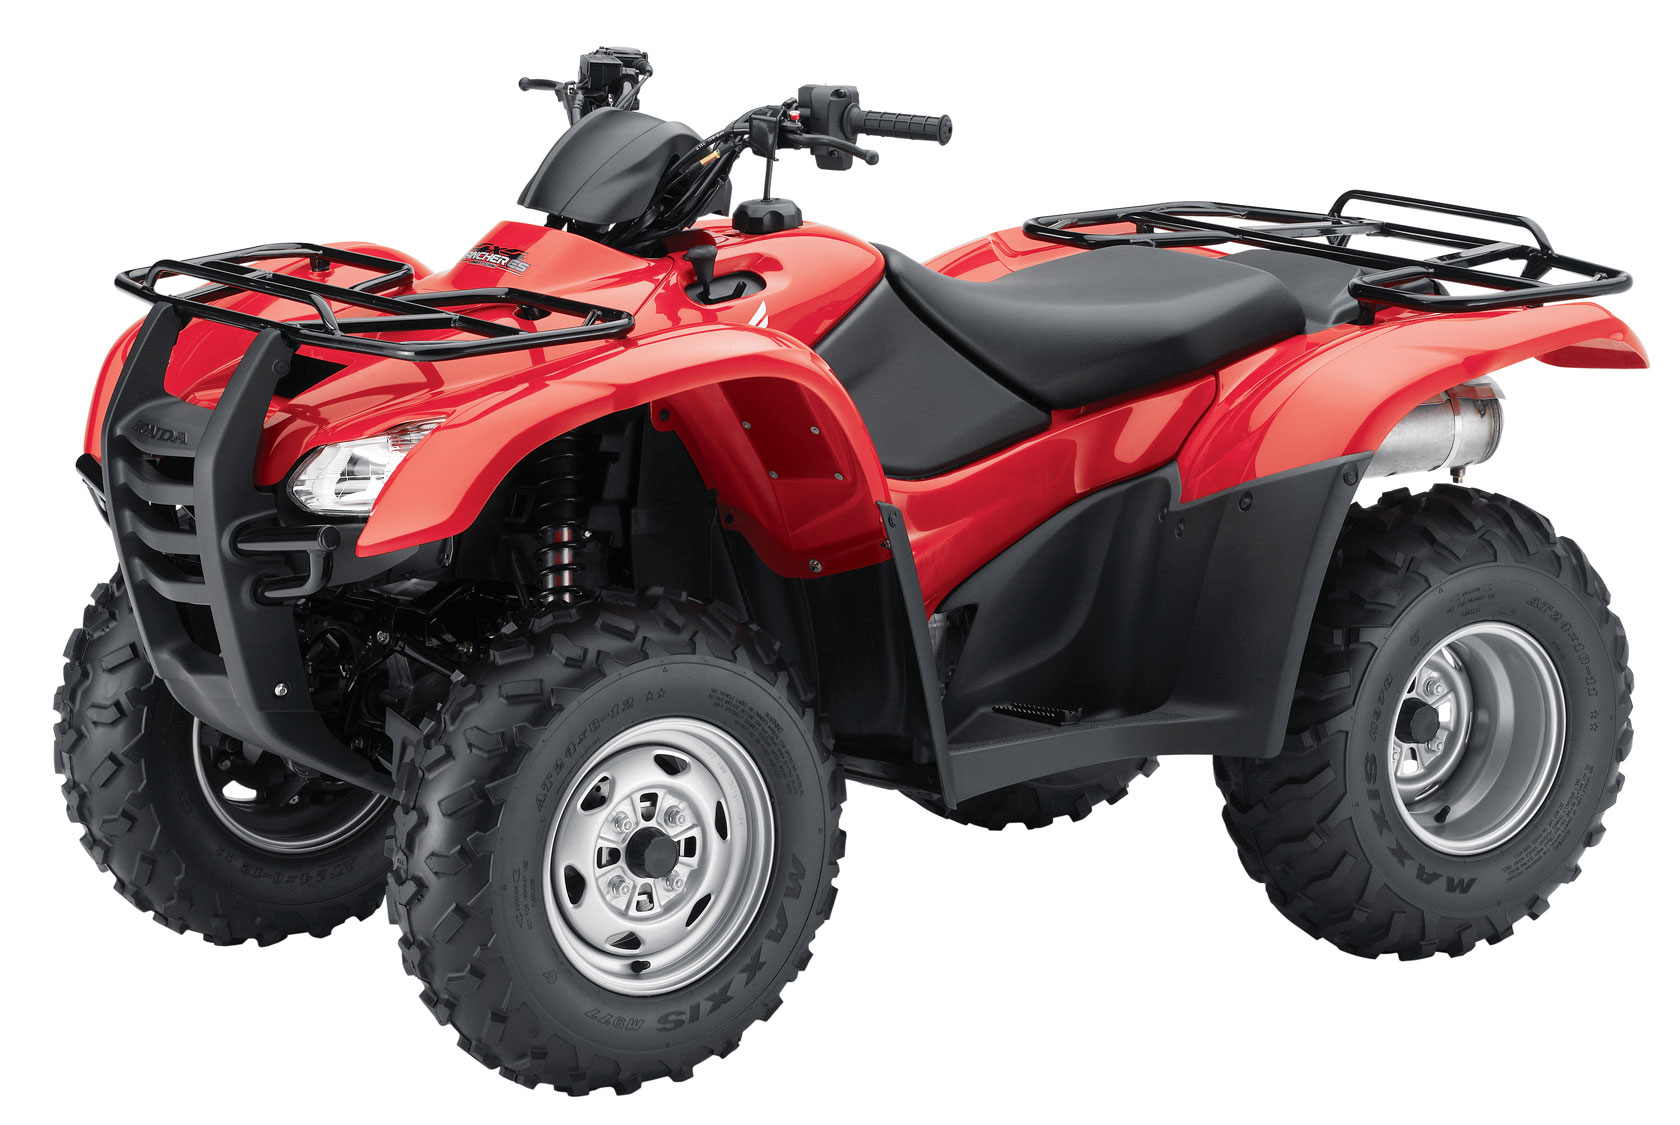 2012 honda fourtrax rancher 4x4 es with electric power steering rh totalmotorcycle com 2012 honda rancher 420 owner's manual 2012 honda rancher 420 service manual pdf